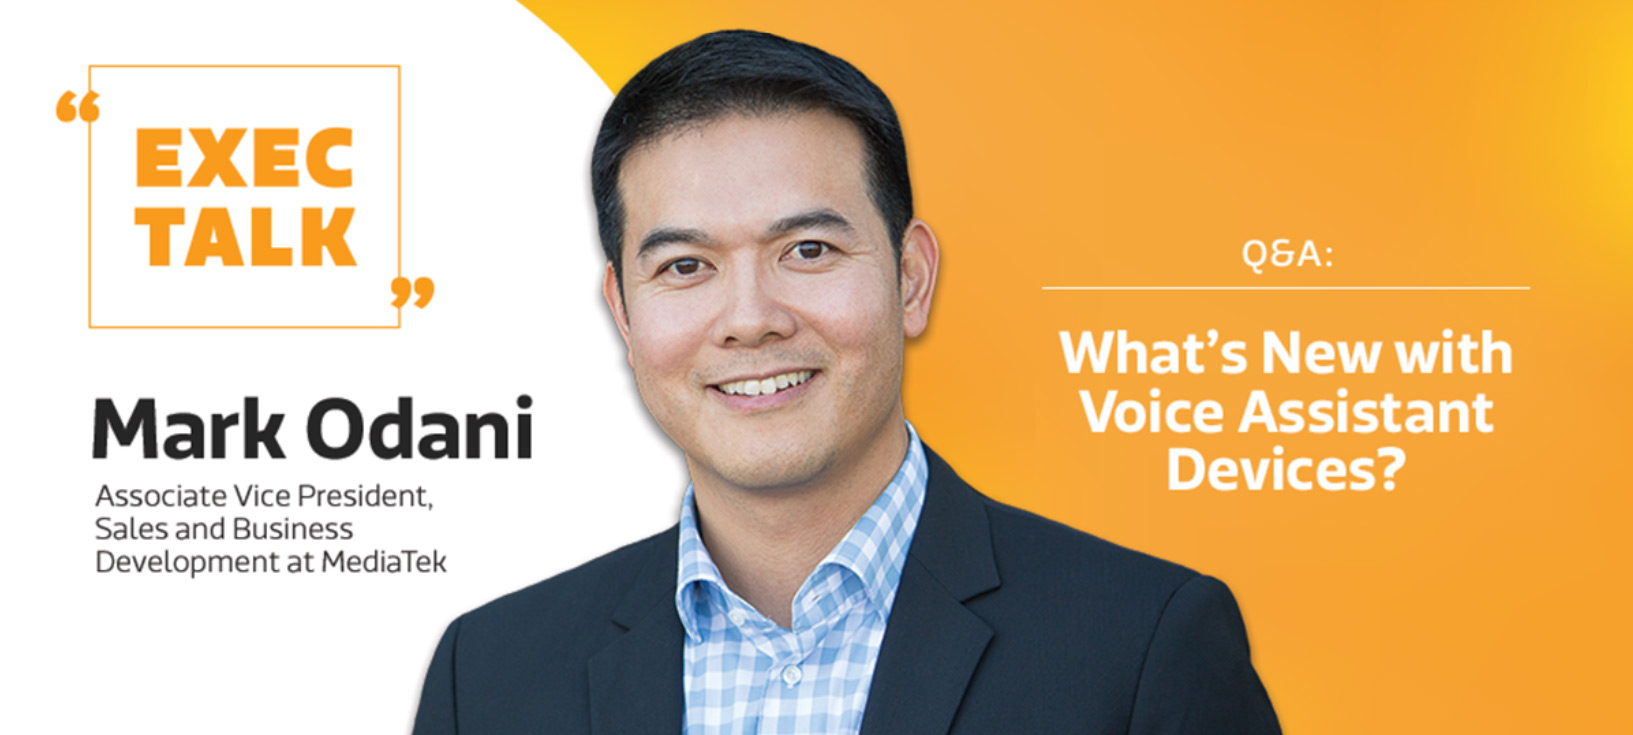 What's New with Voice Assistant Devices? A Q&A with MediaTek's Mark Odani